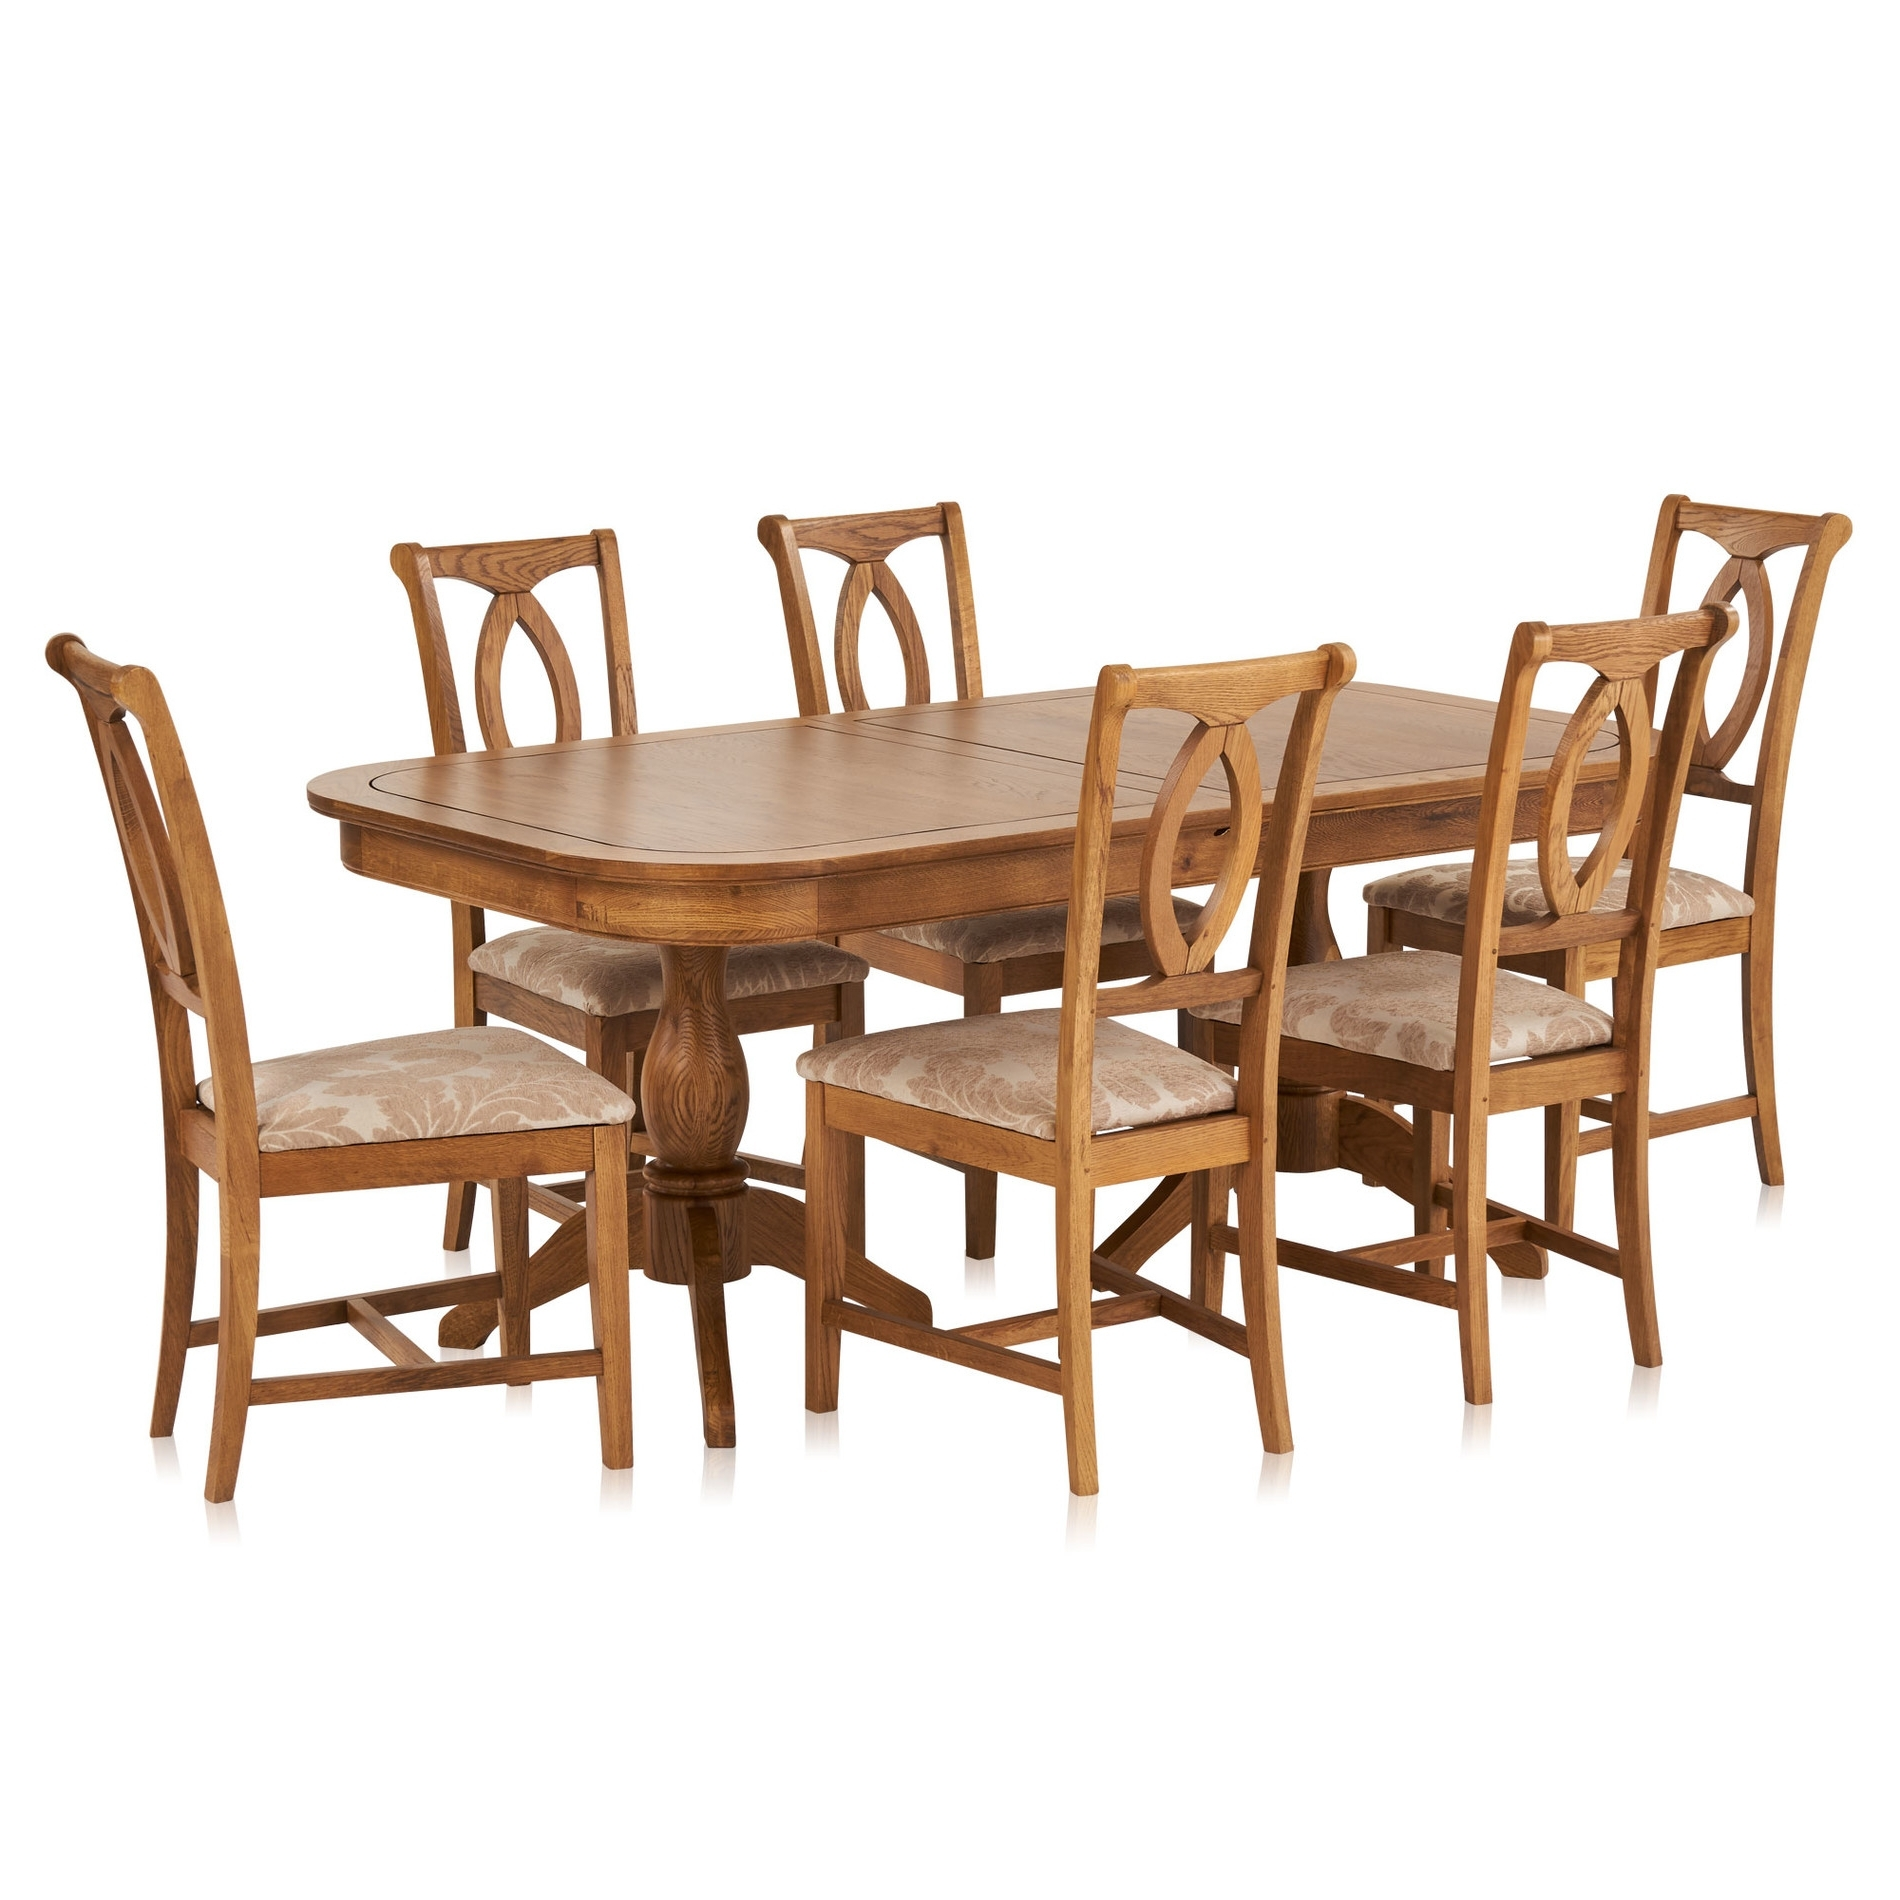 Fashionable Crawford Rectangle Dining Tables Intended For Crawford Extendable Dining Table And 6 Beige Chairs (View 10 of 25)